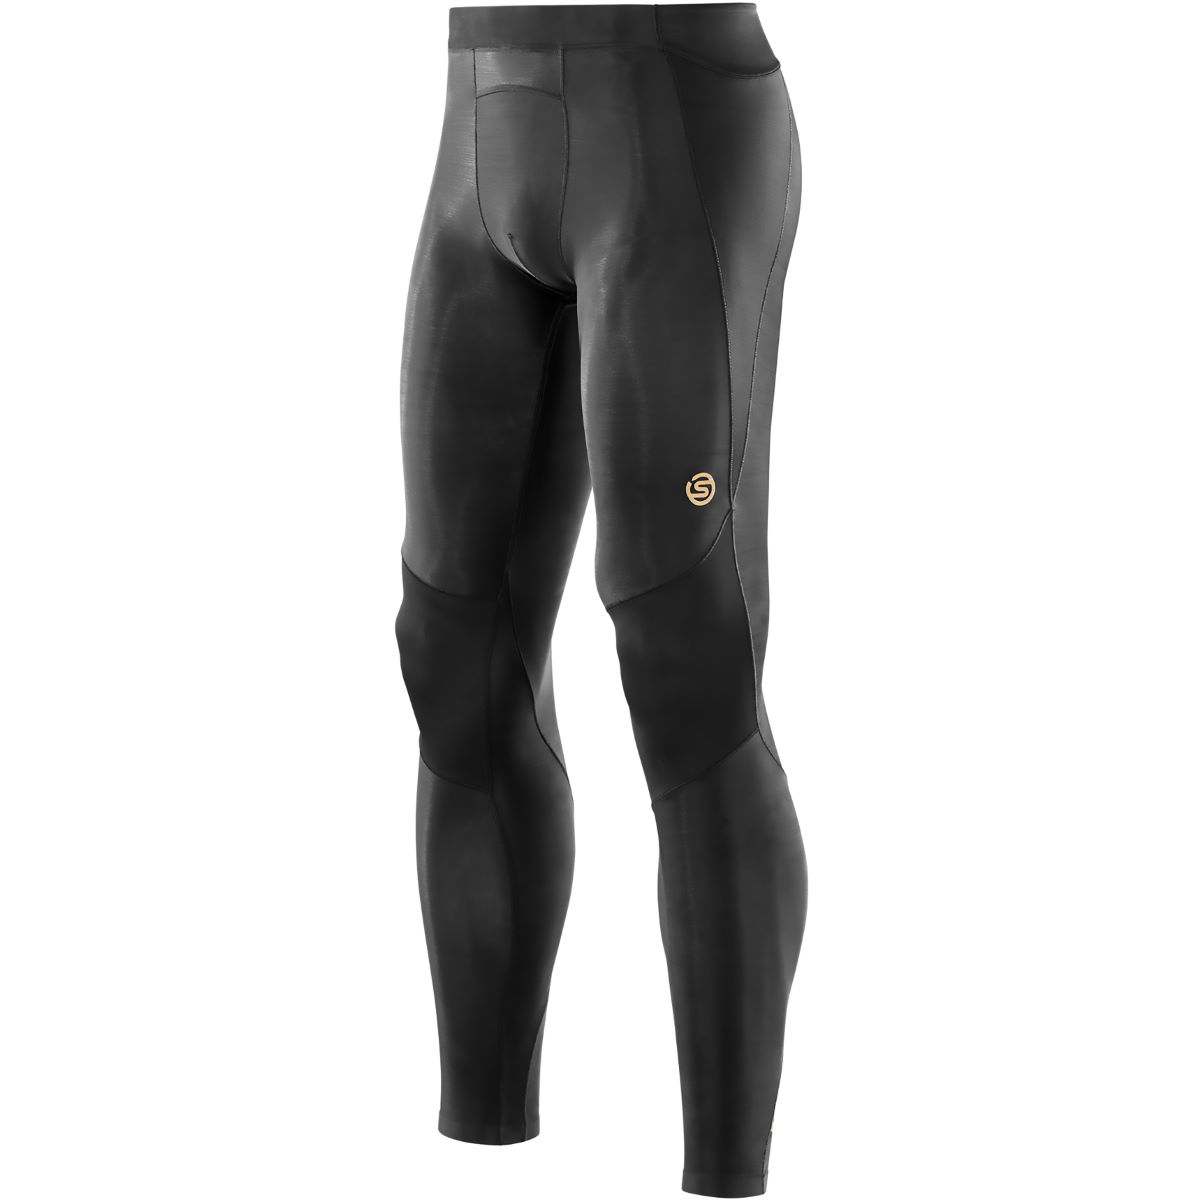 Collant long SKINS A400 - L Noir Sous-vêtements compression